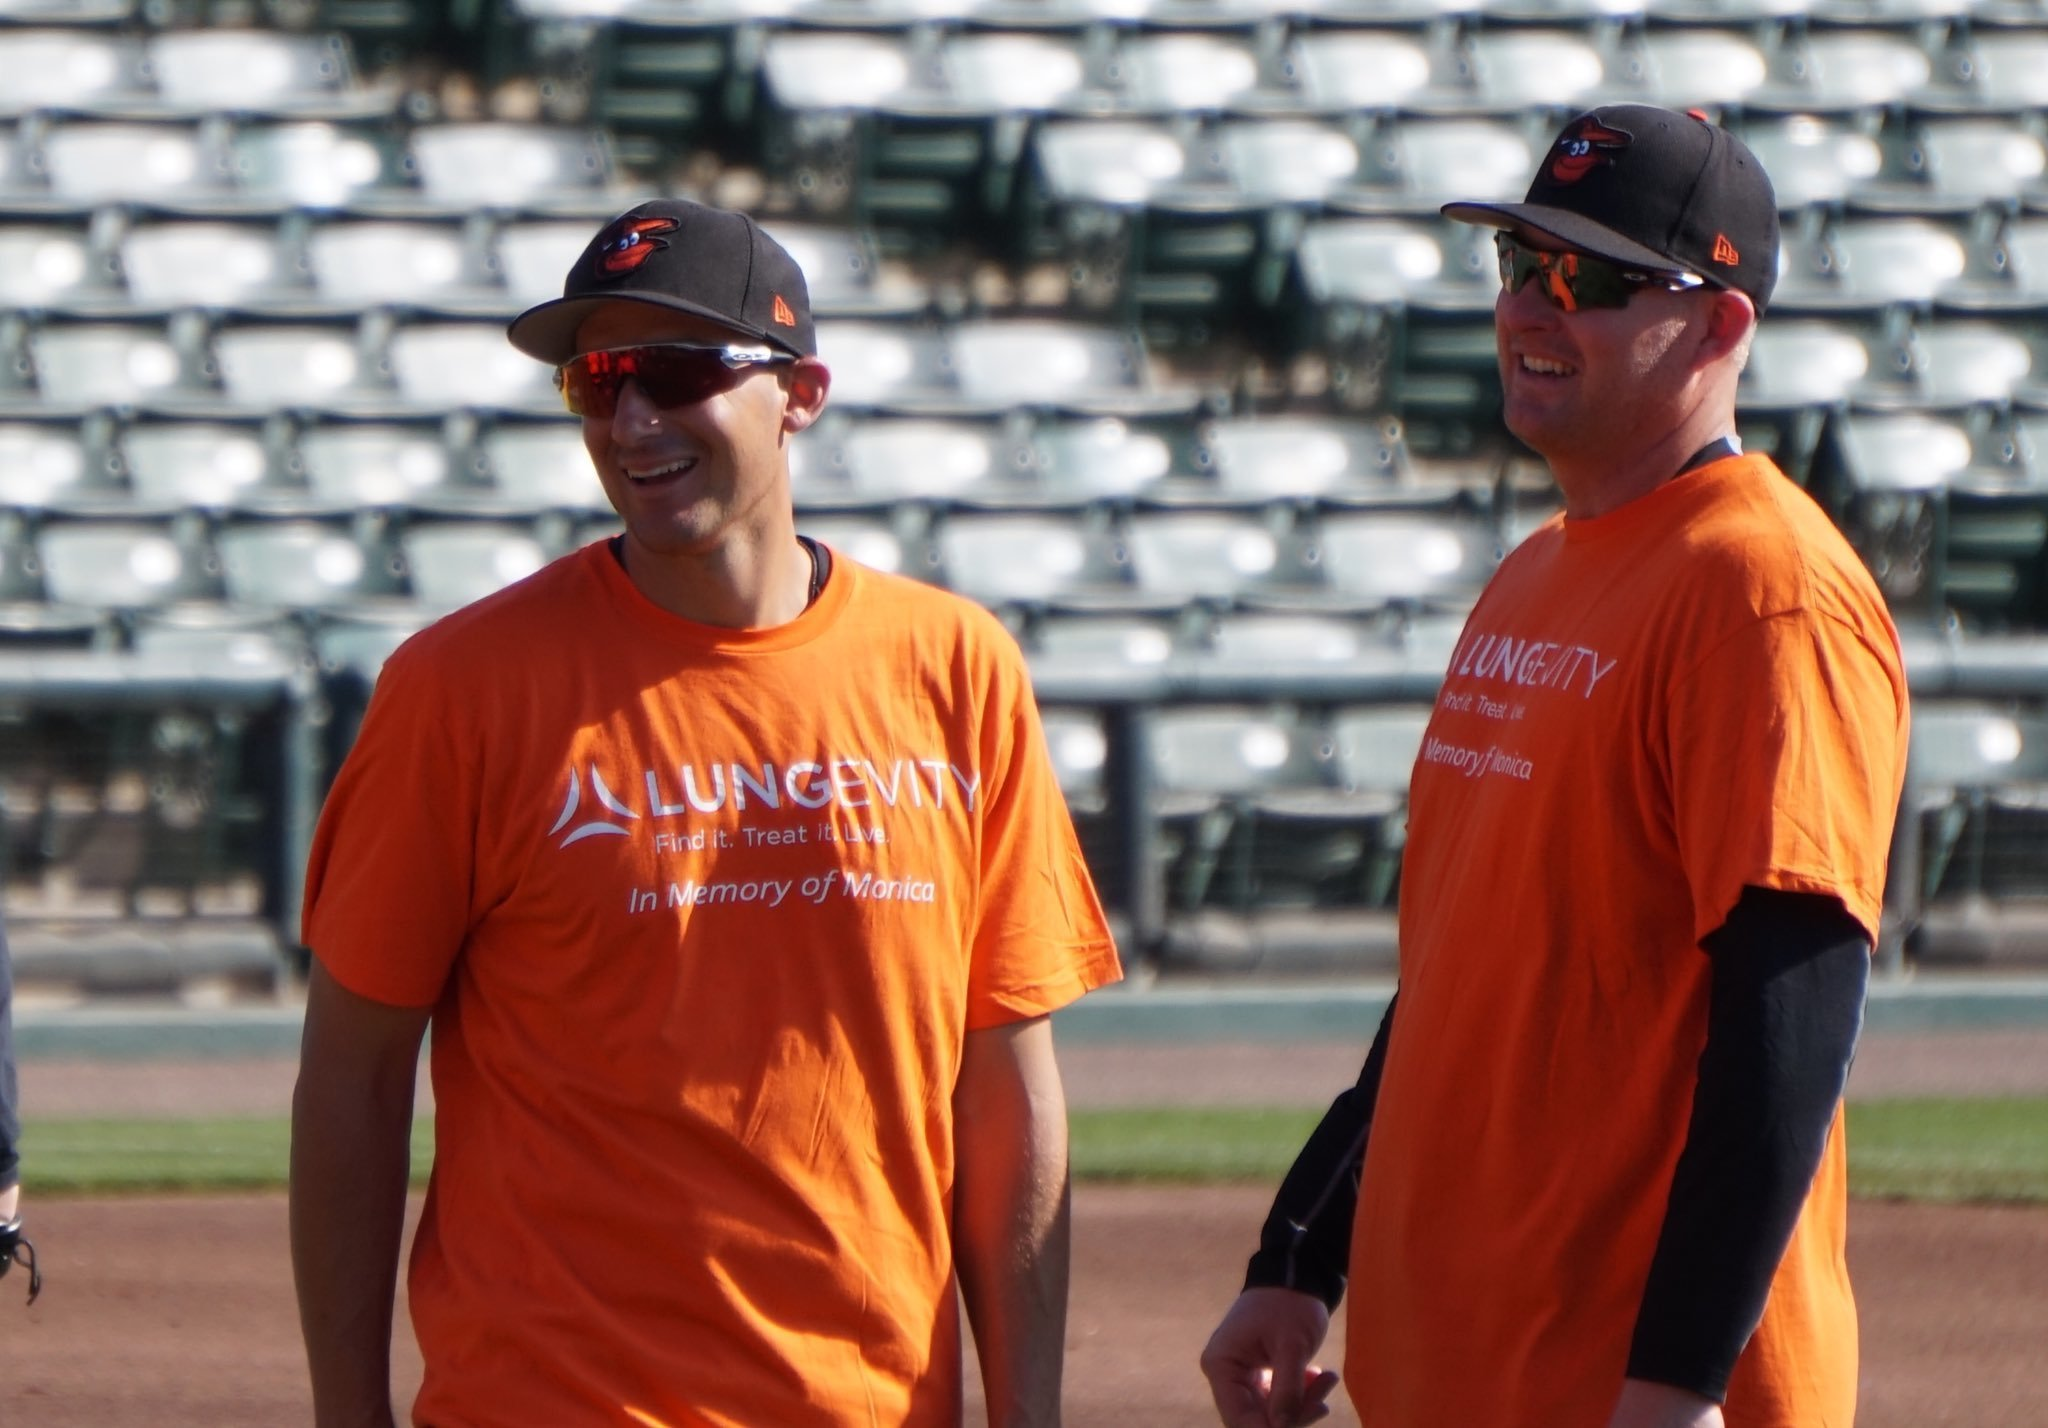 Bal-orioles-utility-man-ryan-flaherty-dealing-with-arm-issue-20170227